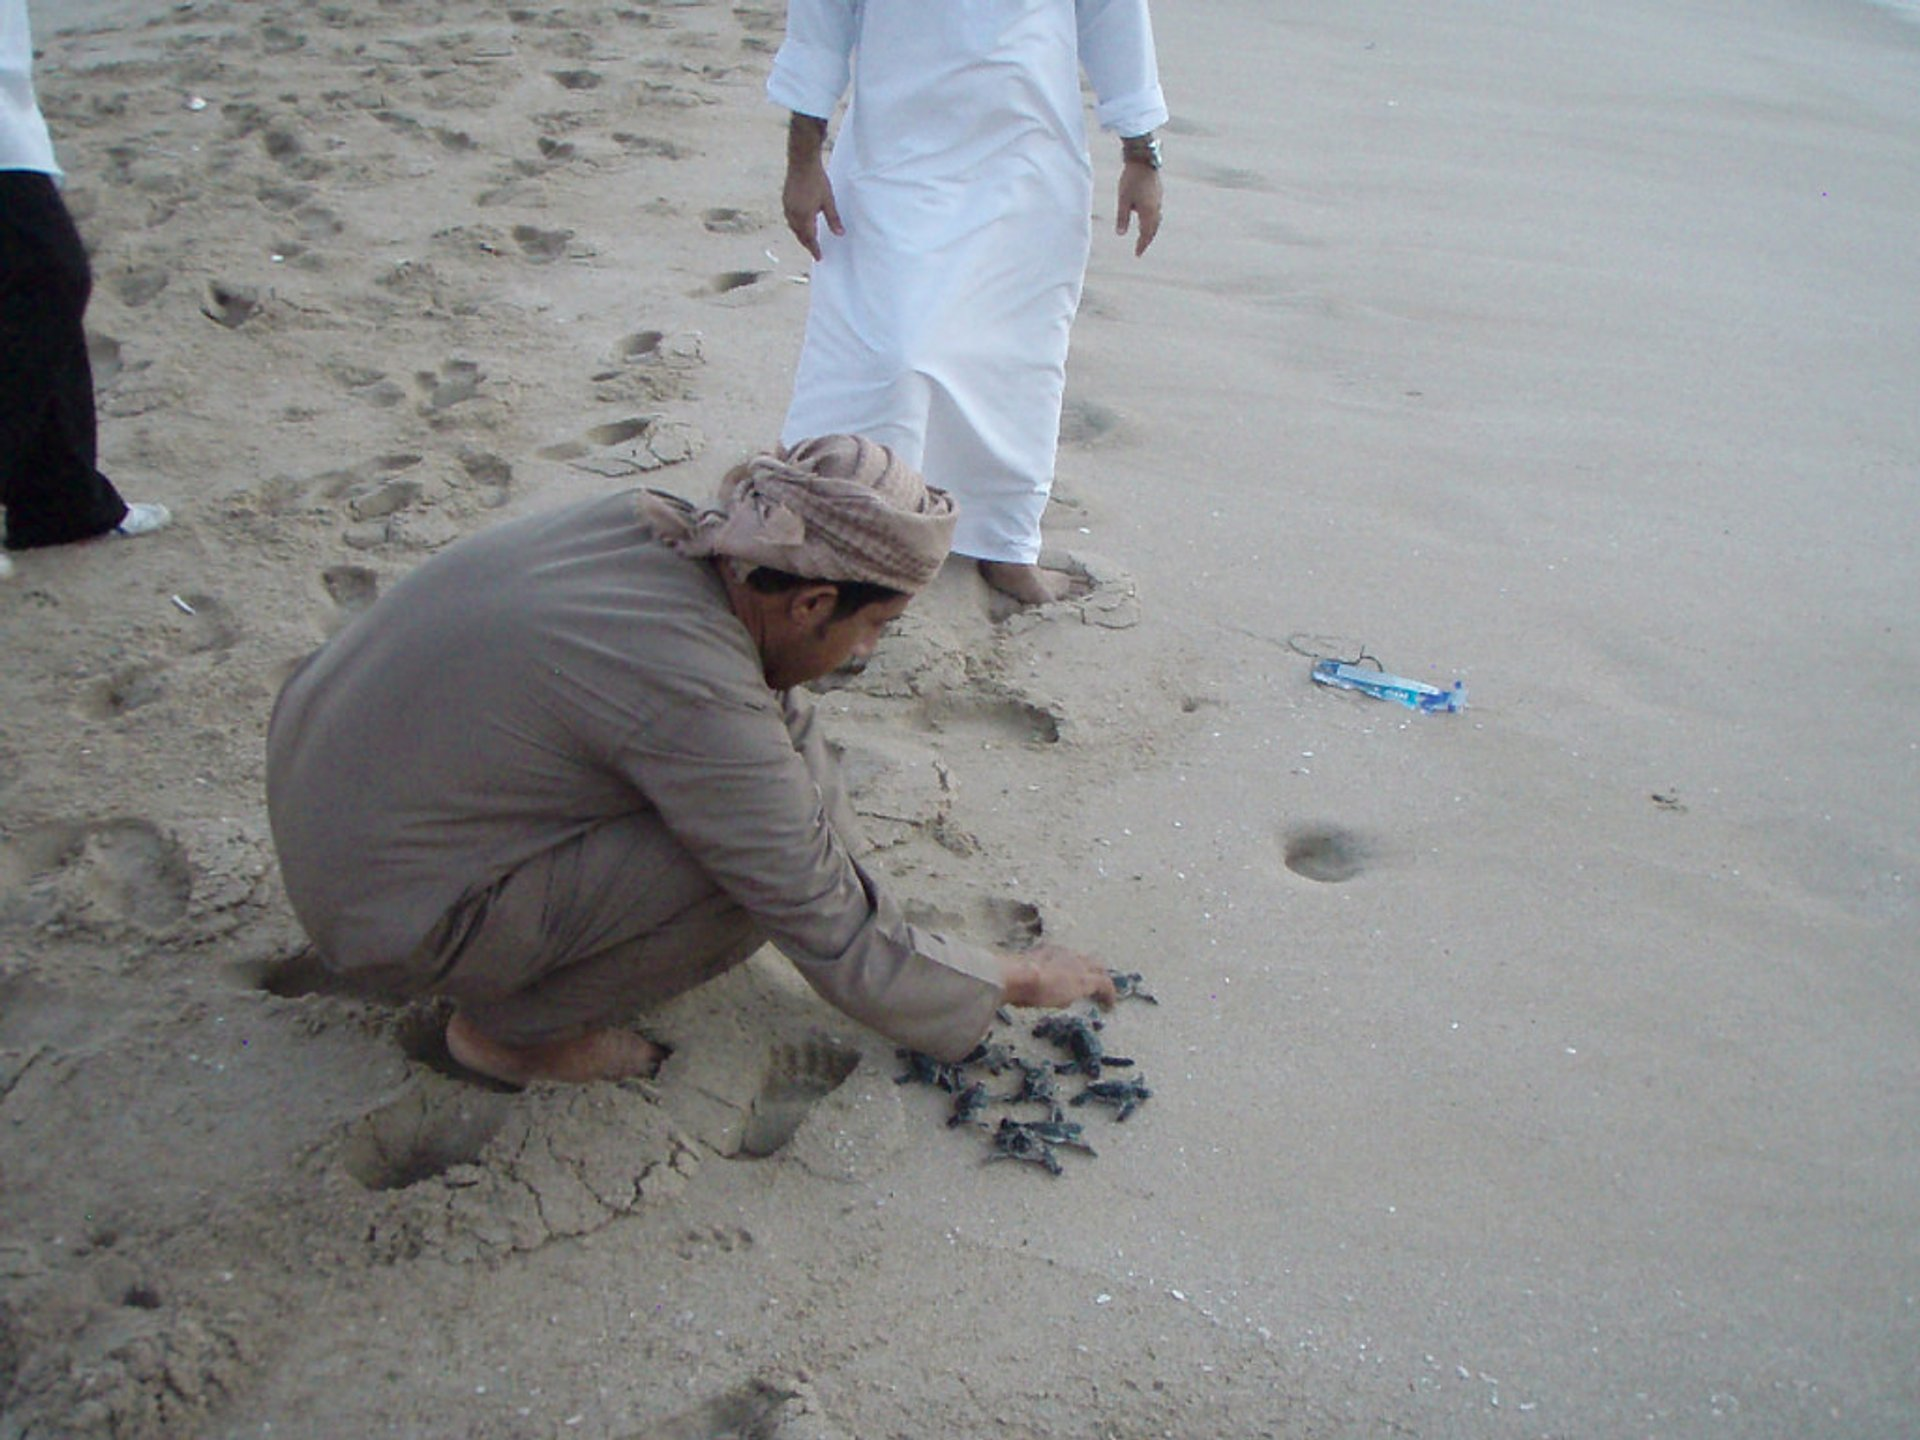 Baby turtles being released at Ras al-Jinz turtle reserve 2020